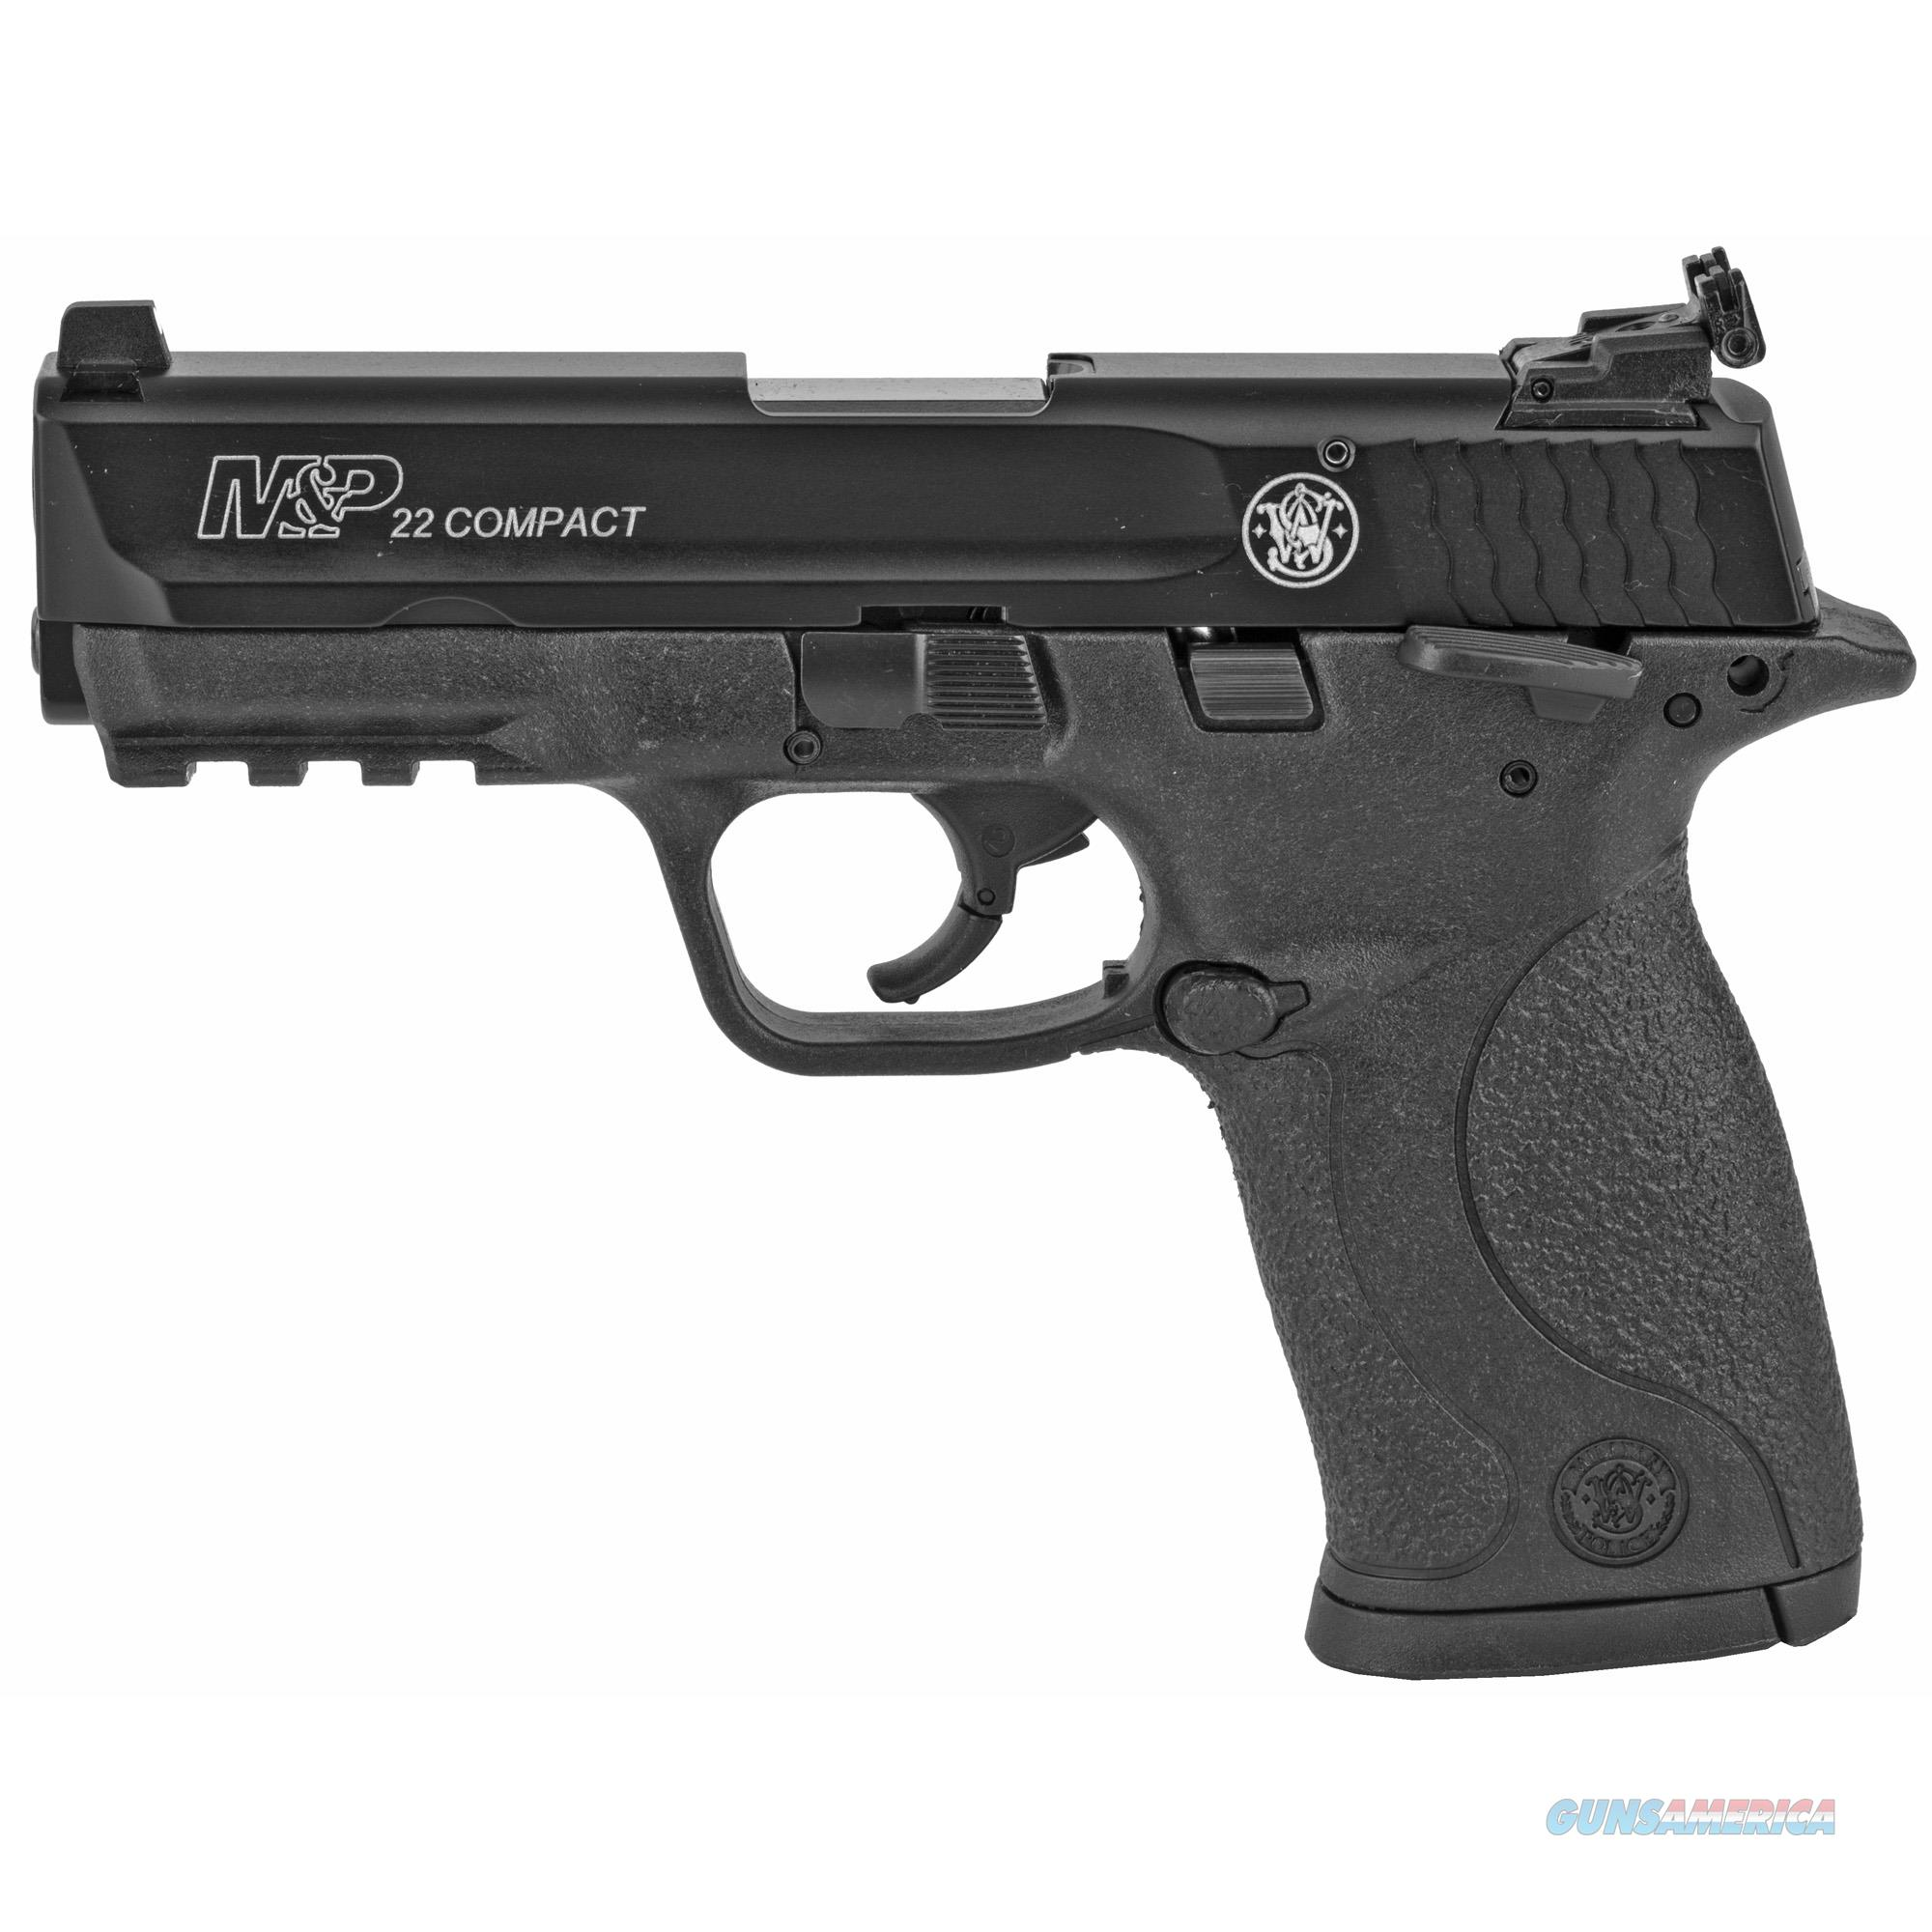 Smith & Wesson M&P22 Compact 22LR  Guns > Pistols > Smith & Wesson Pistols - Autos > .22 Autos